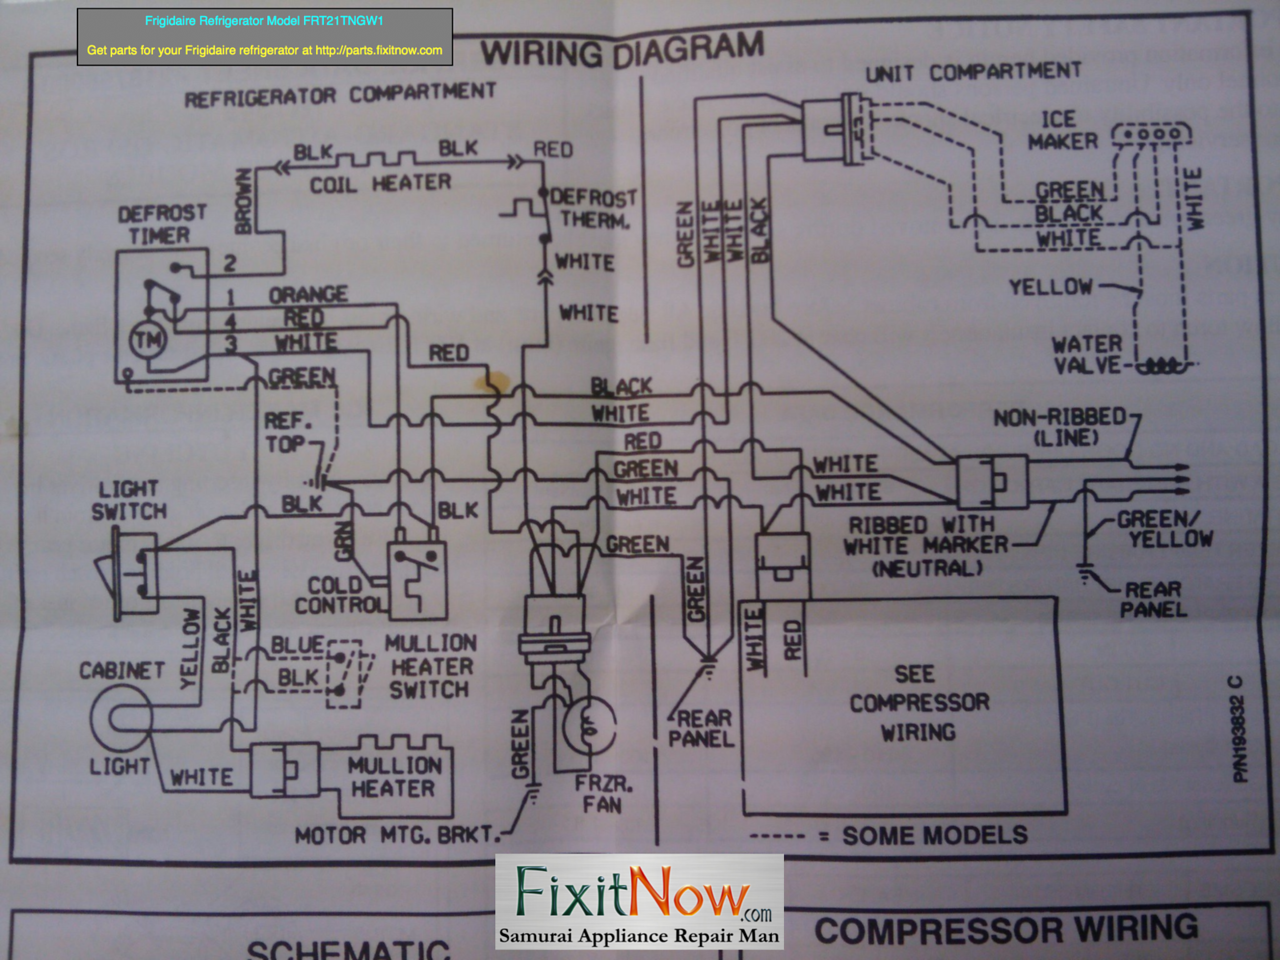 Wiring Diagram For Frigidaire Stove Data Electric Dryer Valve Library Refrigerator Model Frt21tngw1